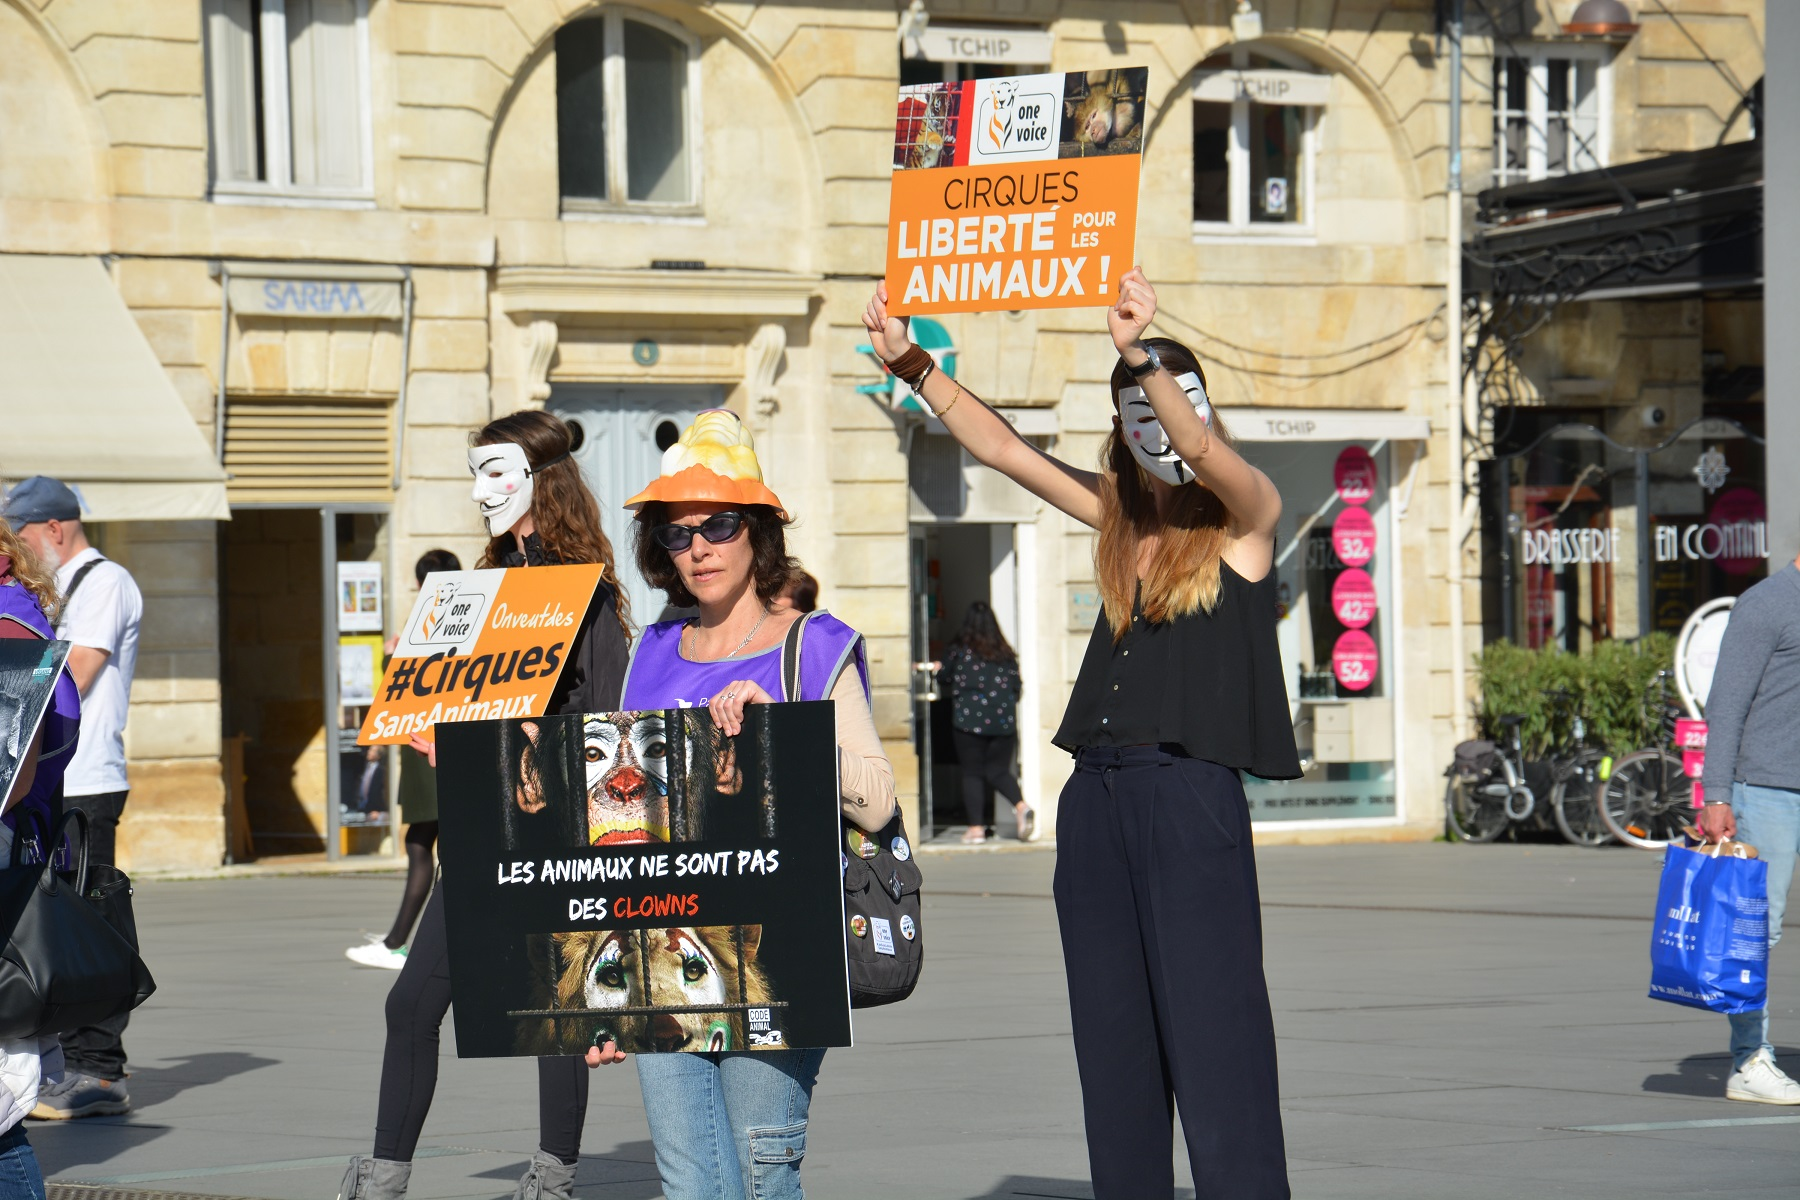 manifestation_mairie_bordeaux_animaux_cirques_triangle2